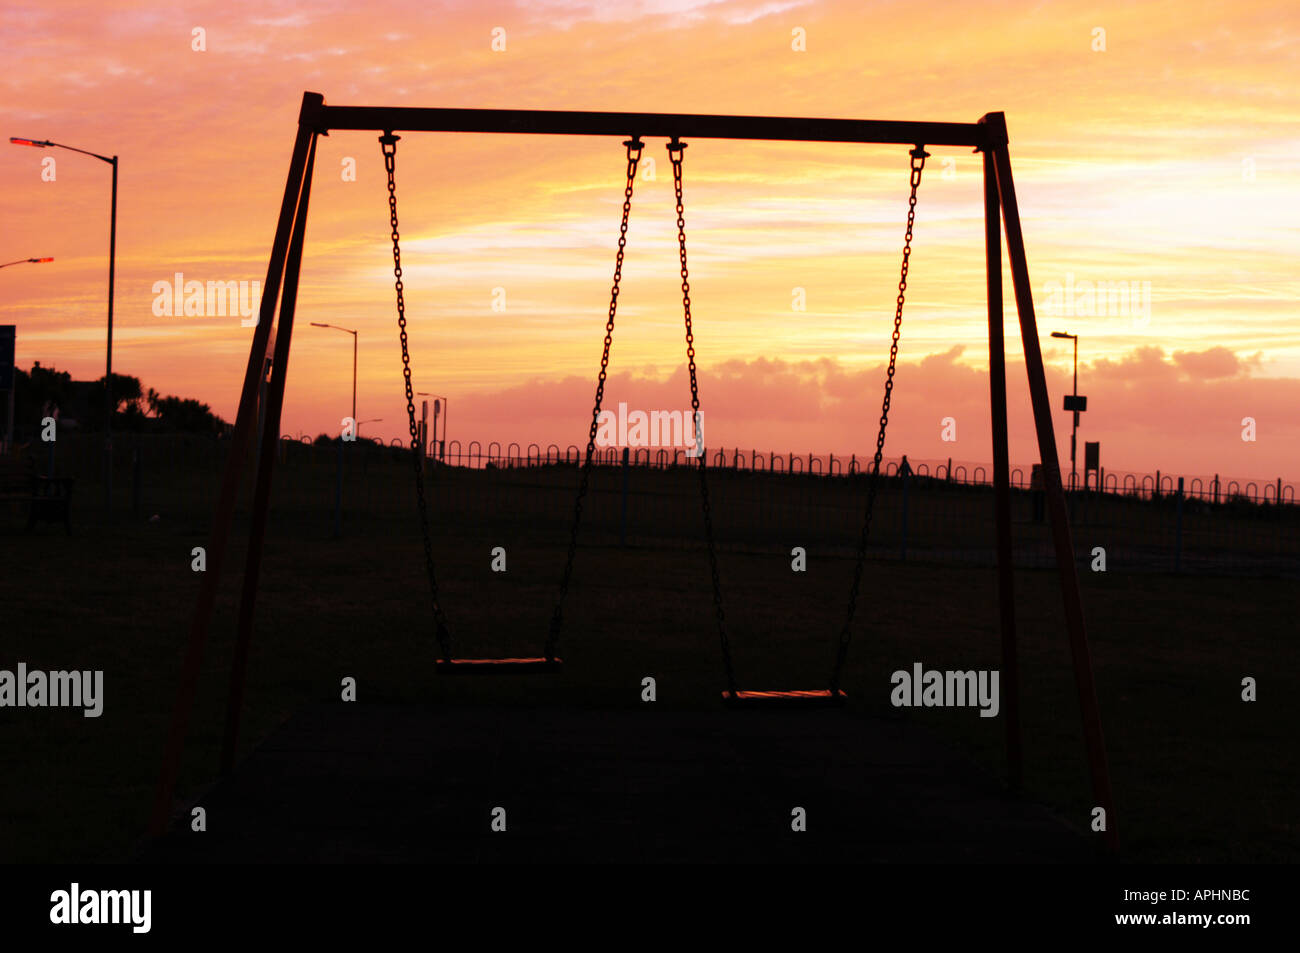 Swings In Park At Sunset Stock Photo 5157307 Alamy